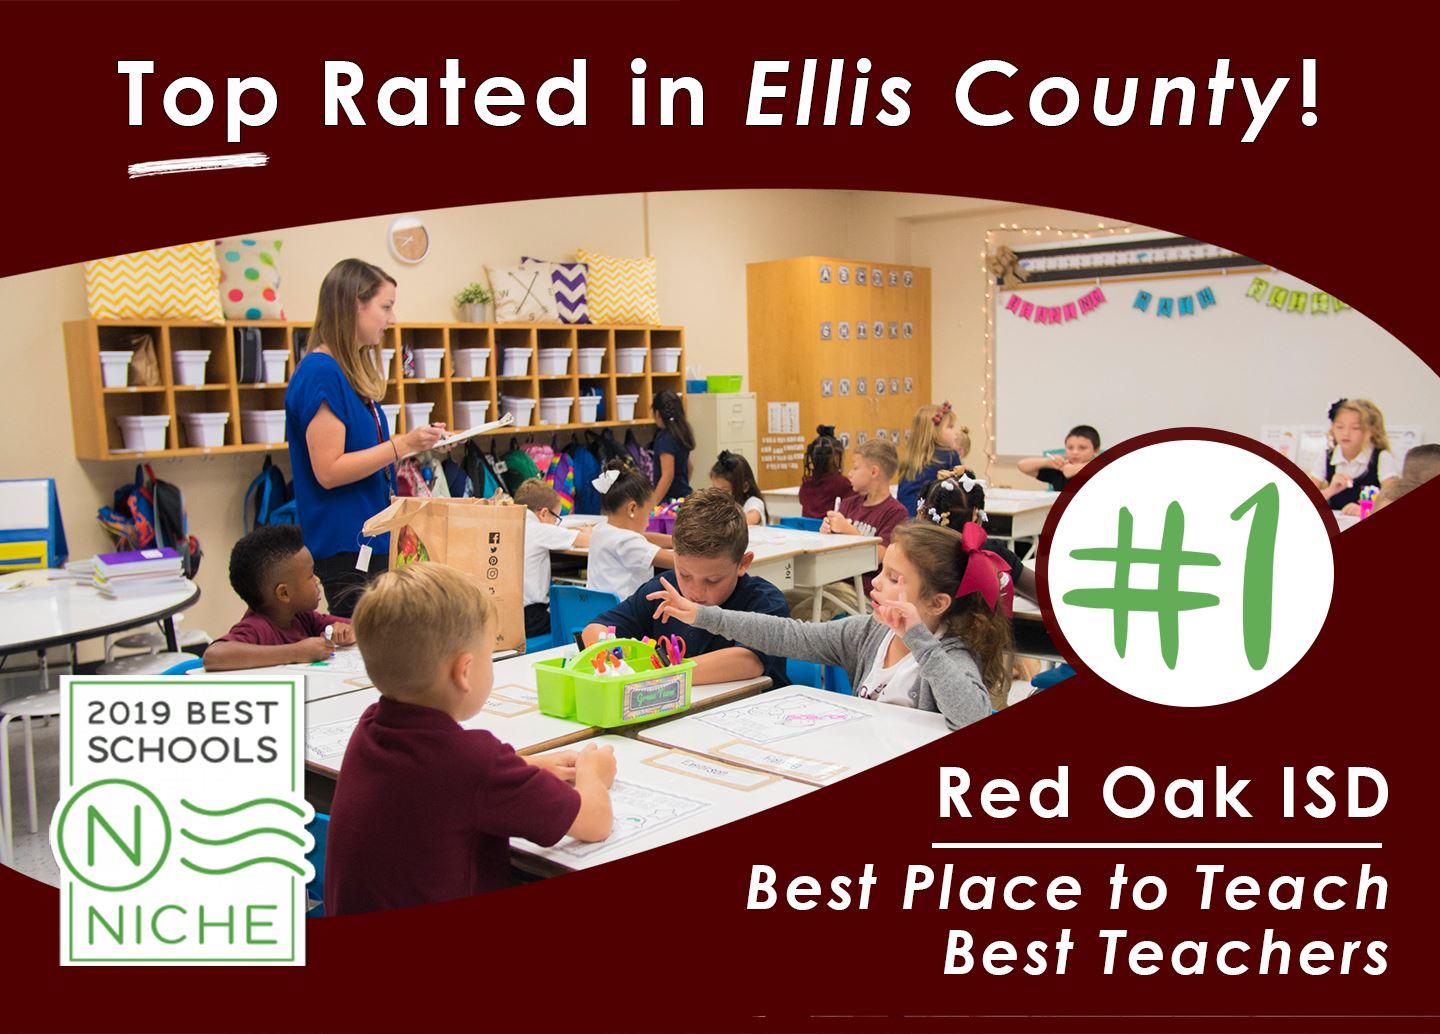 Red Oak ISD is Top Rated in Ellis County for Best Place to Teach and Best Teachers!